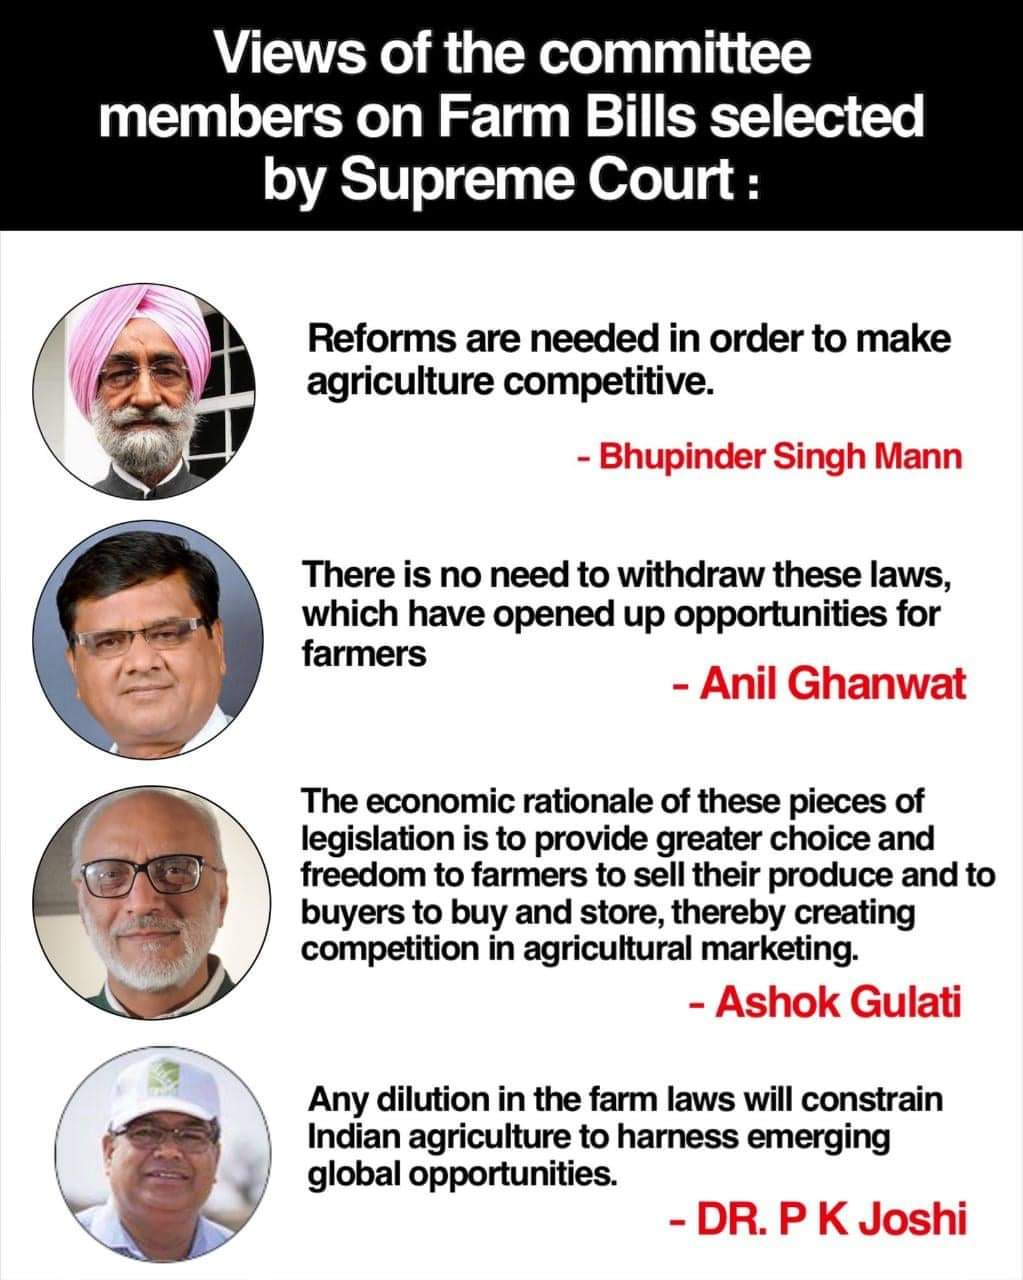 Supreme Court put a stay on implementation of farm laws 2020 and has formed a 4-member committee, comprising Bhupinder Singh Mann, Pramod Kumar Joshi, Ashok Gulati.